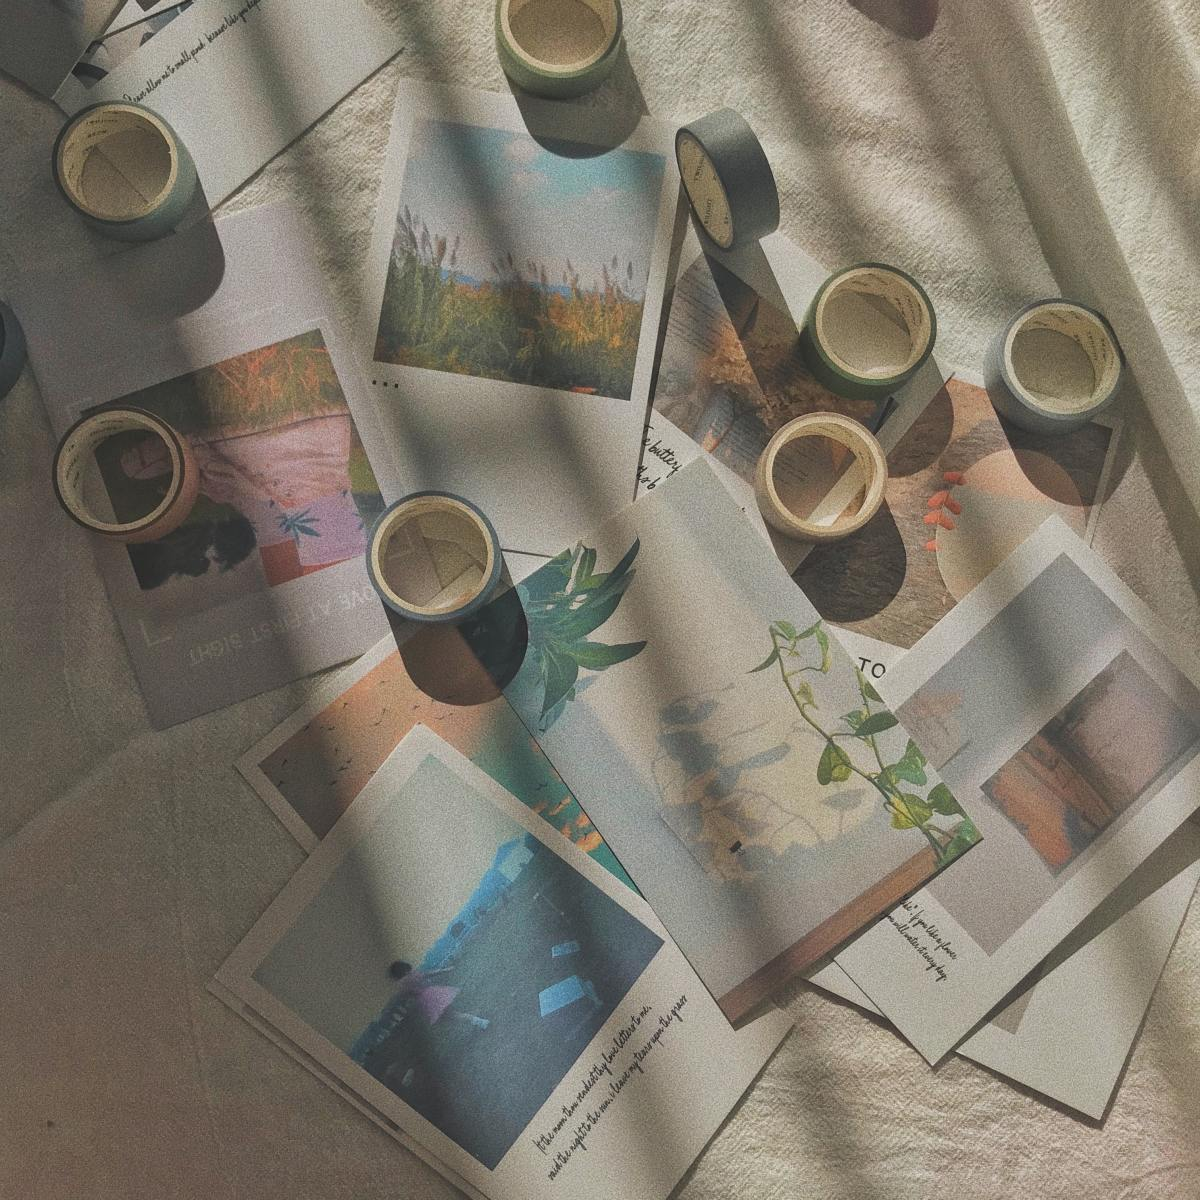 These aesthetic photos would look lovely in any bullet journal!